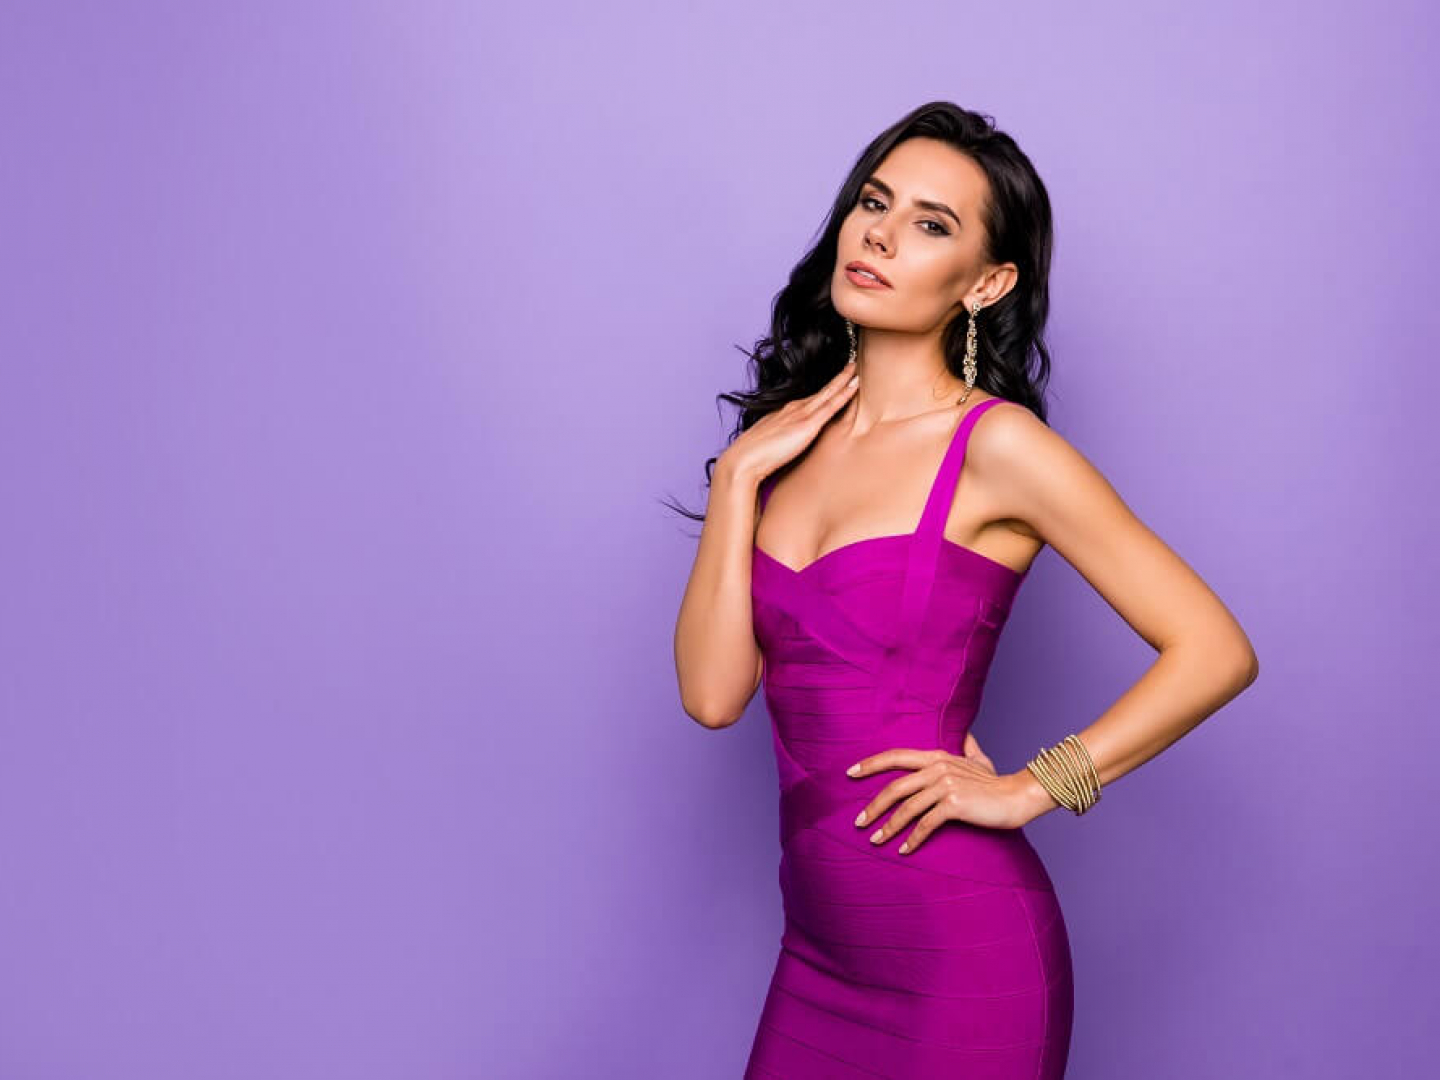 Portrait of her she nice-looking attractive lovely exquisite charming luxury graceful wavy-haired lady posing touching neck isolated over violet purple lilac pastel background